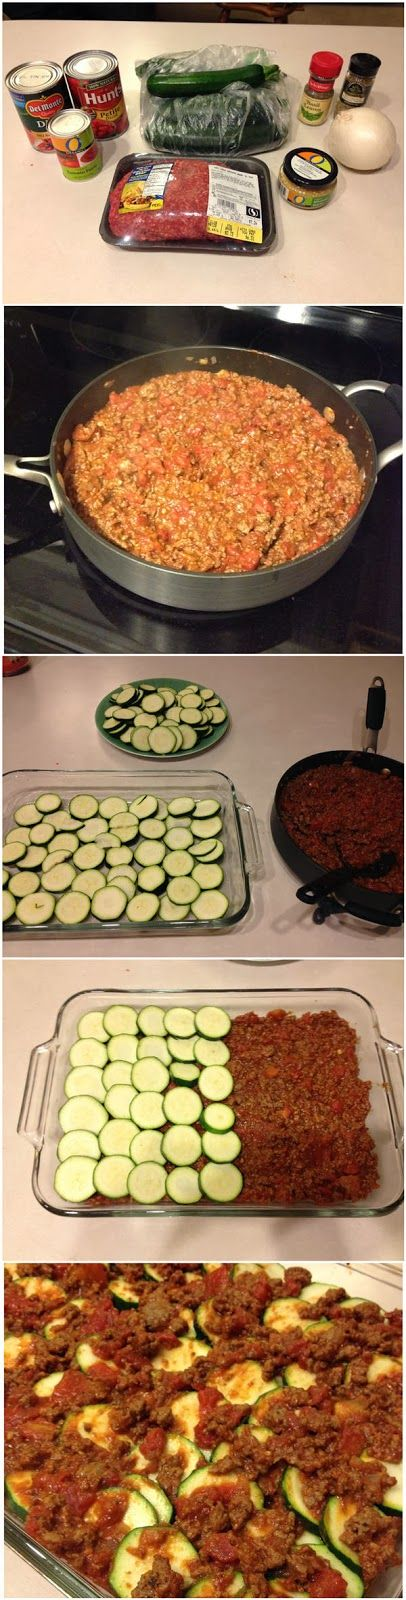 Zucchini Lasagna - Can make and freeze it. Make Lasagna but sub zucchini for noodles and use mozzarella cheese only on the top